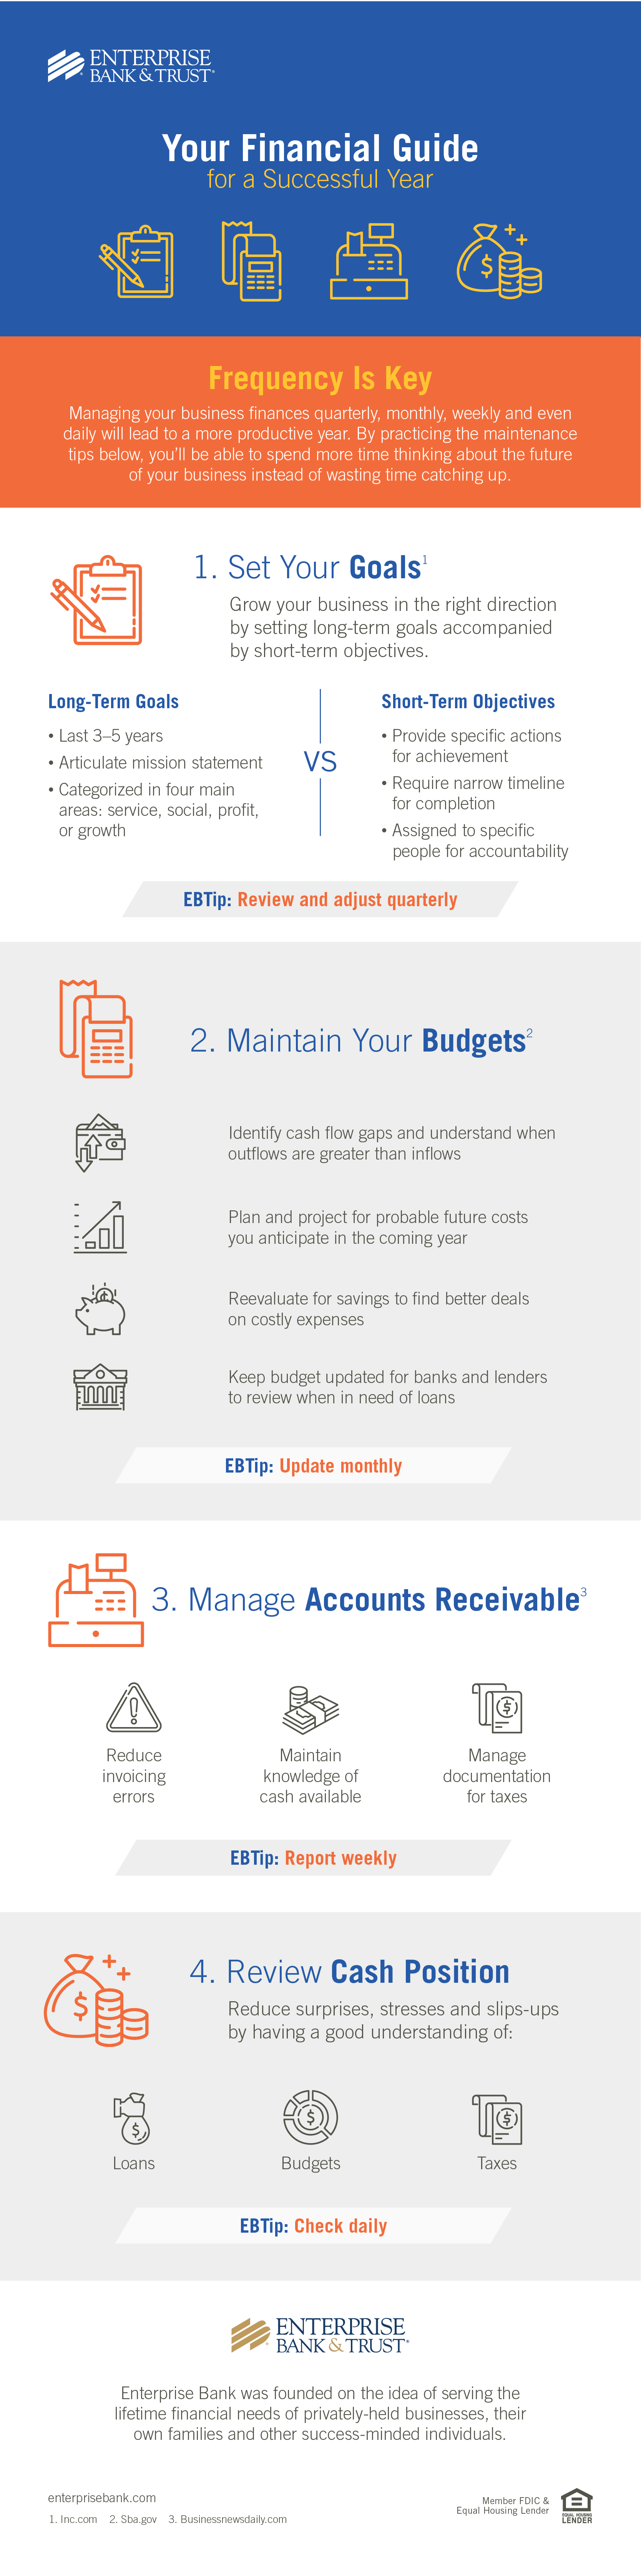 Your Financial Guide to a Success Year infographic